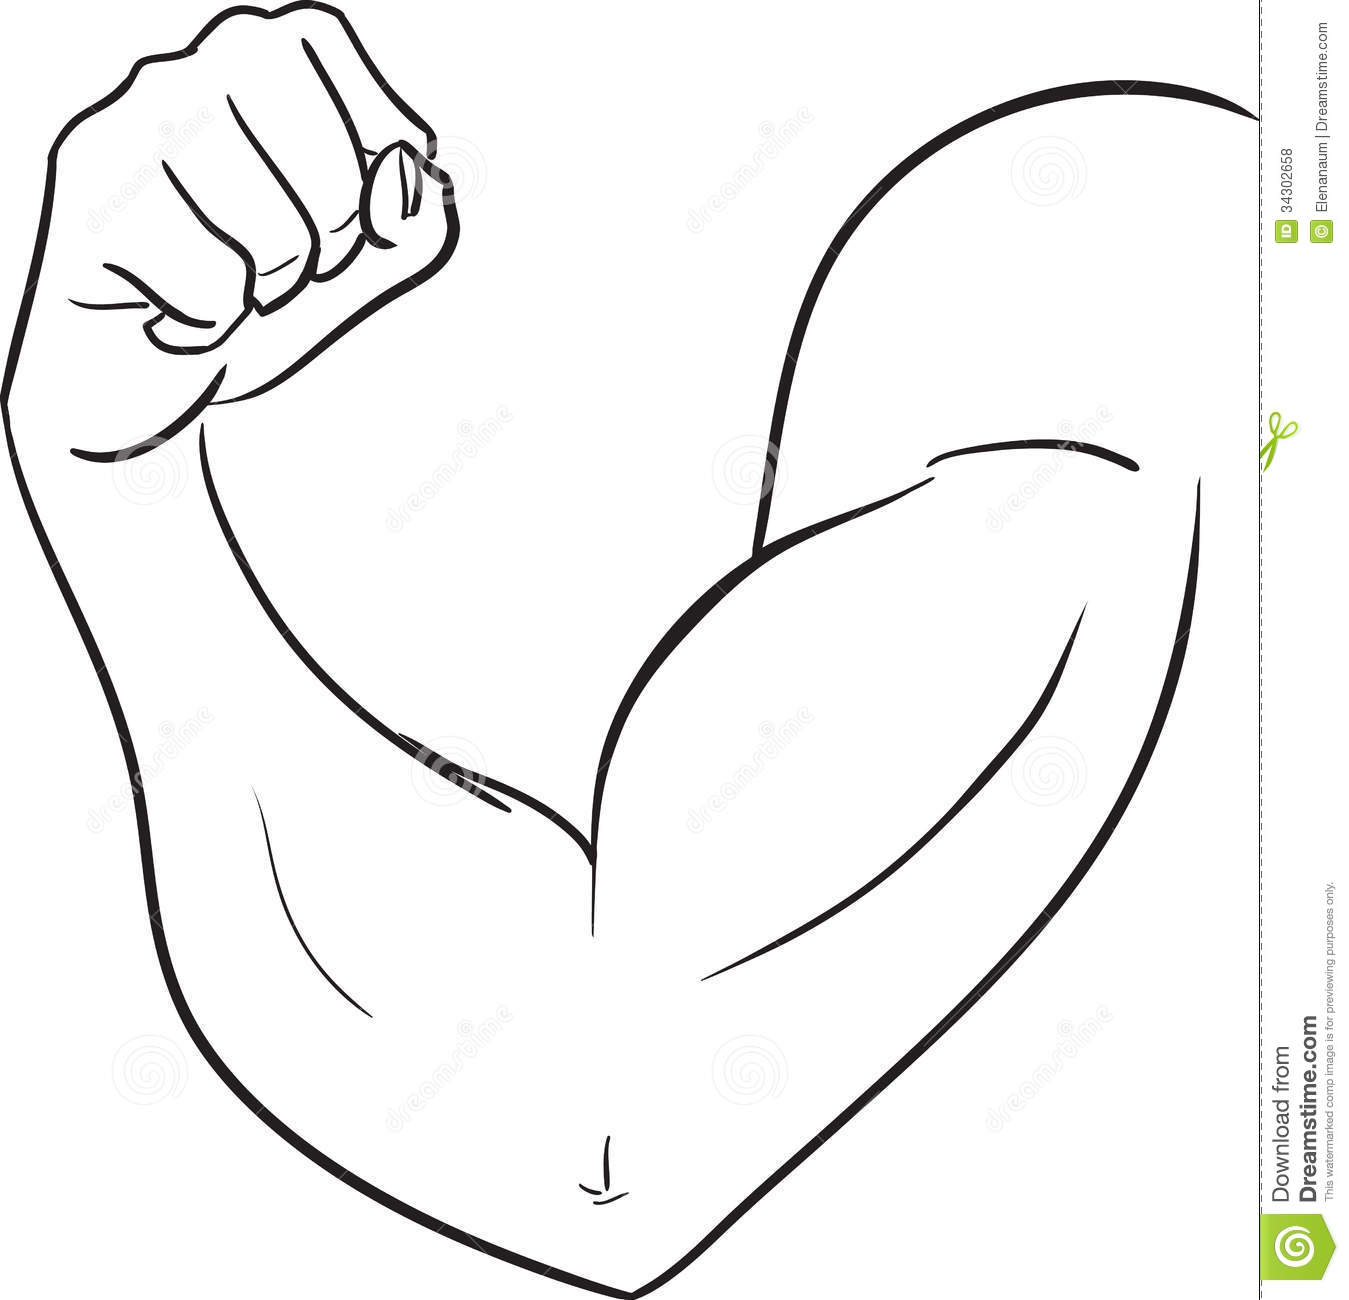 1349x1300 Arm Black And White Clipart